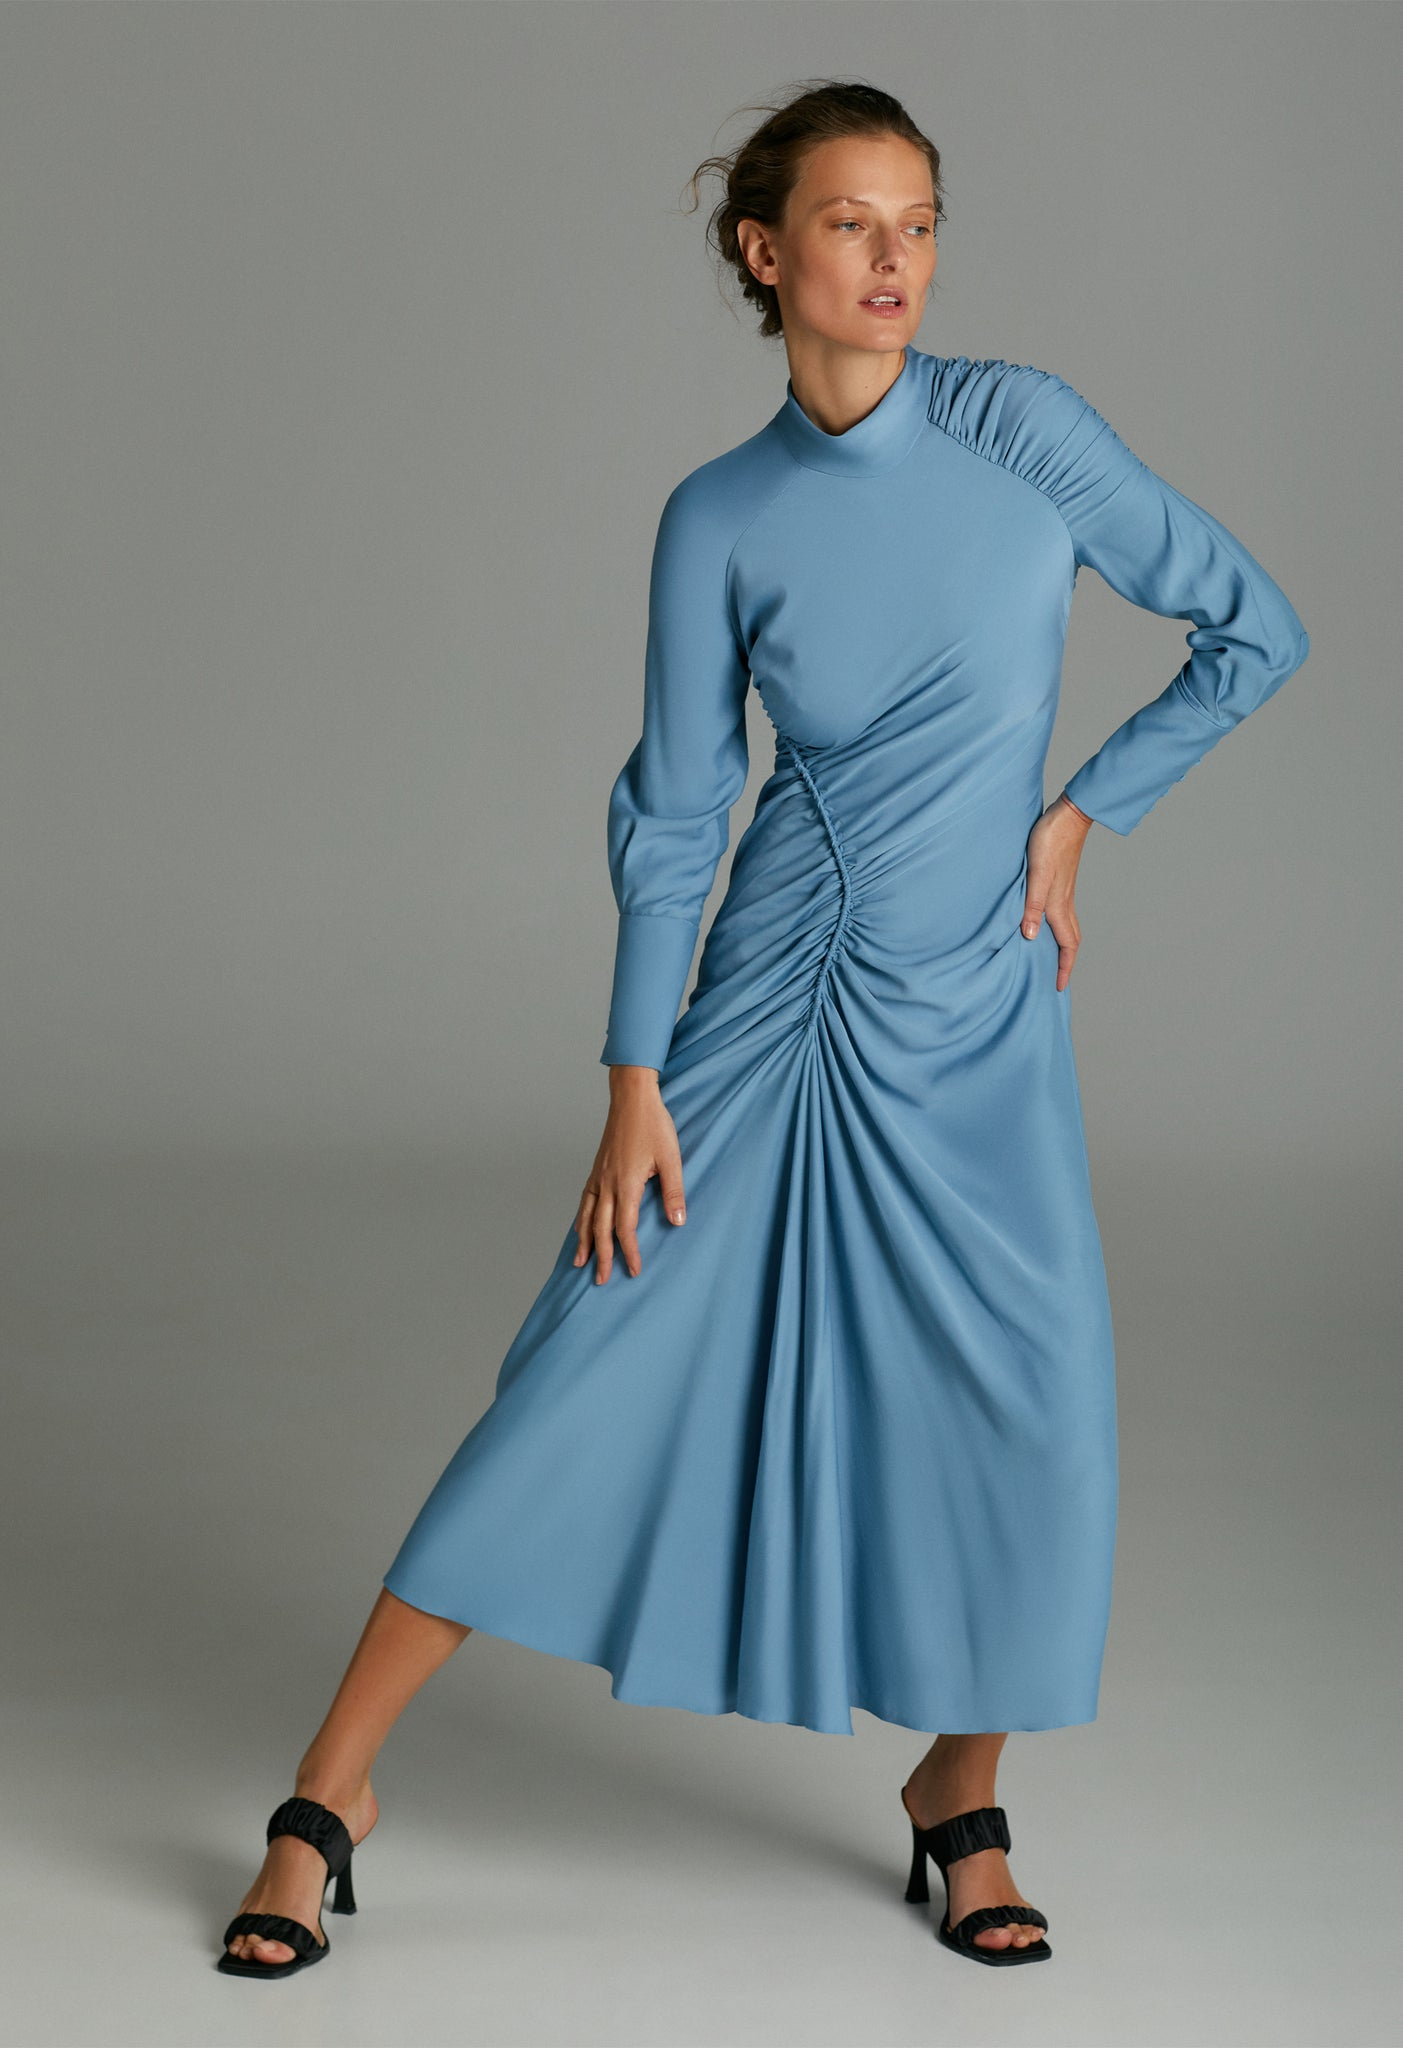 Model in Harriette dress